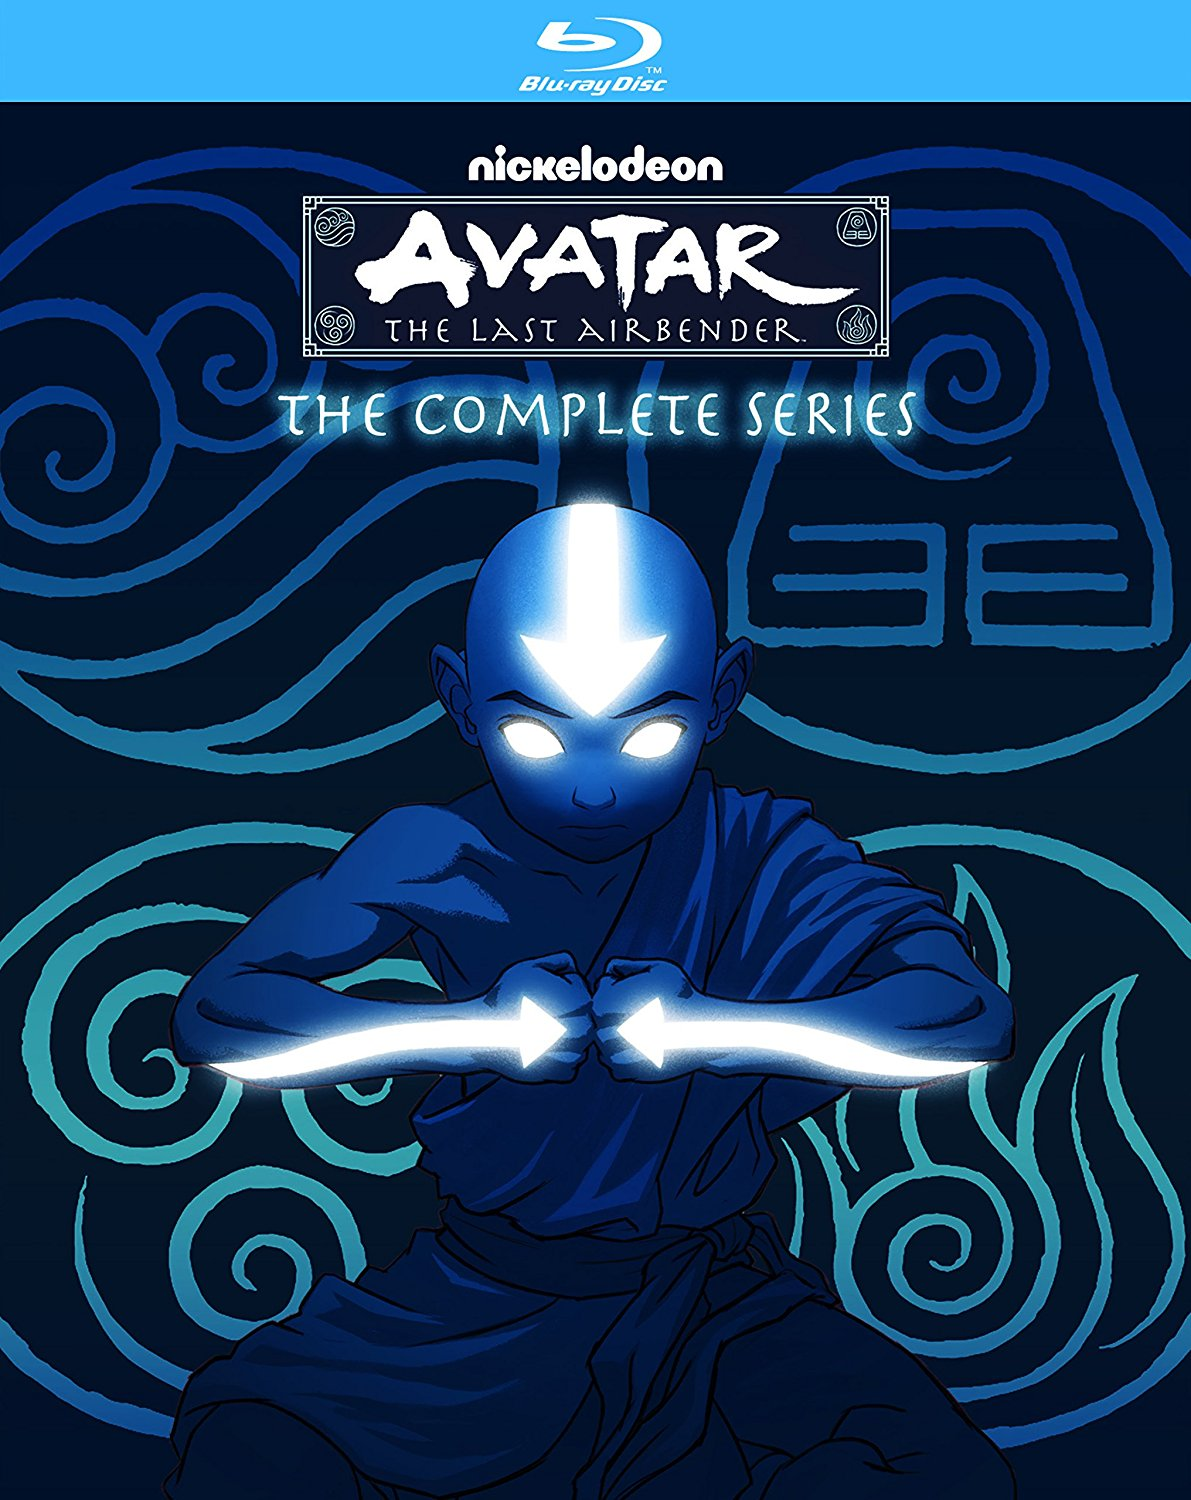 avatar the last airbender the complete series release. Black Bedroom Furniture Sets. Home Design Ideas